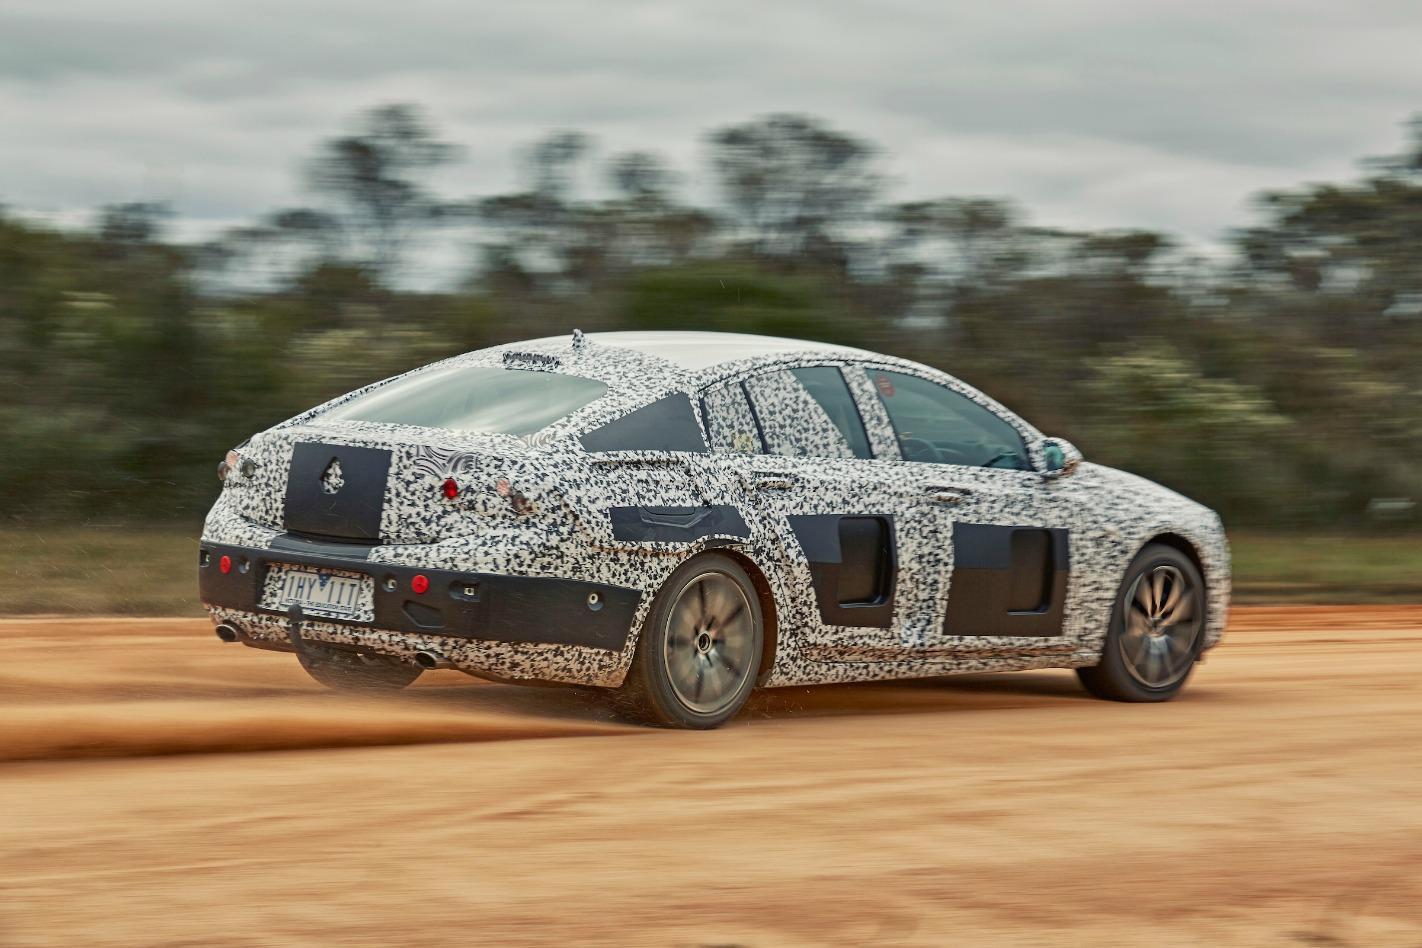 2018 Holden NG Commodore Rear Drift